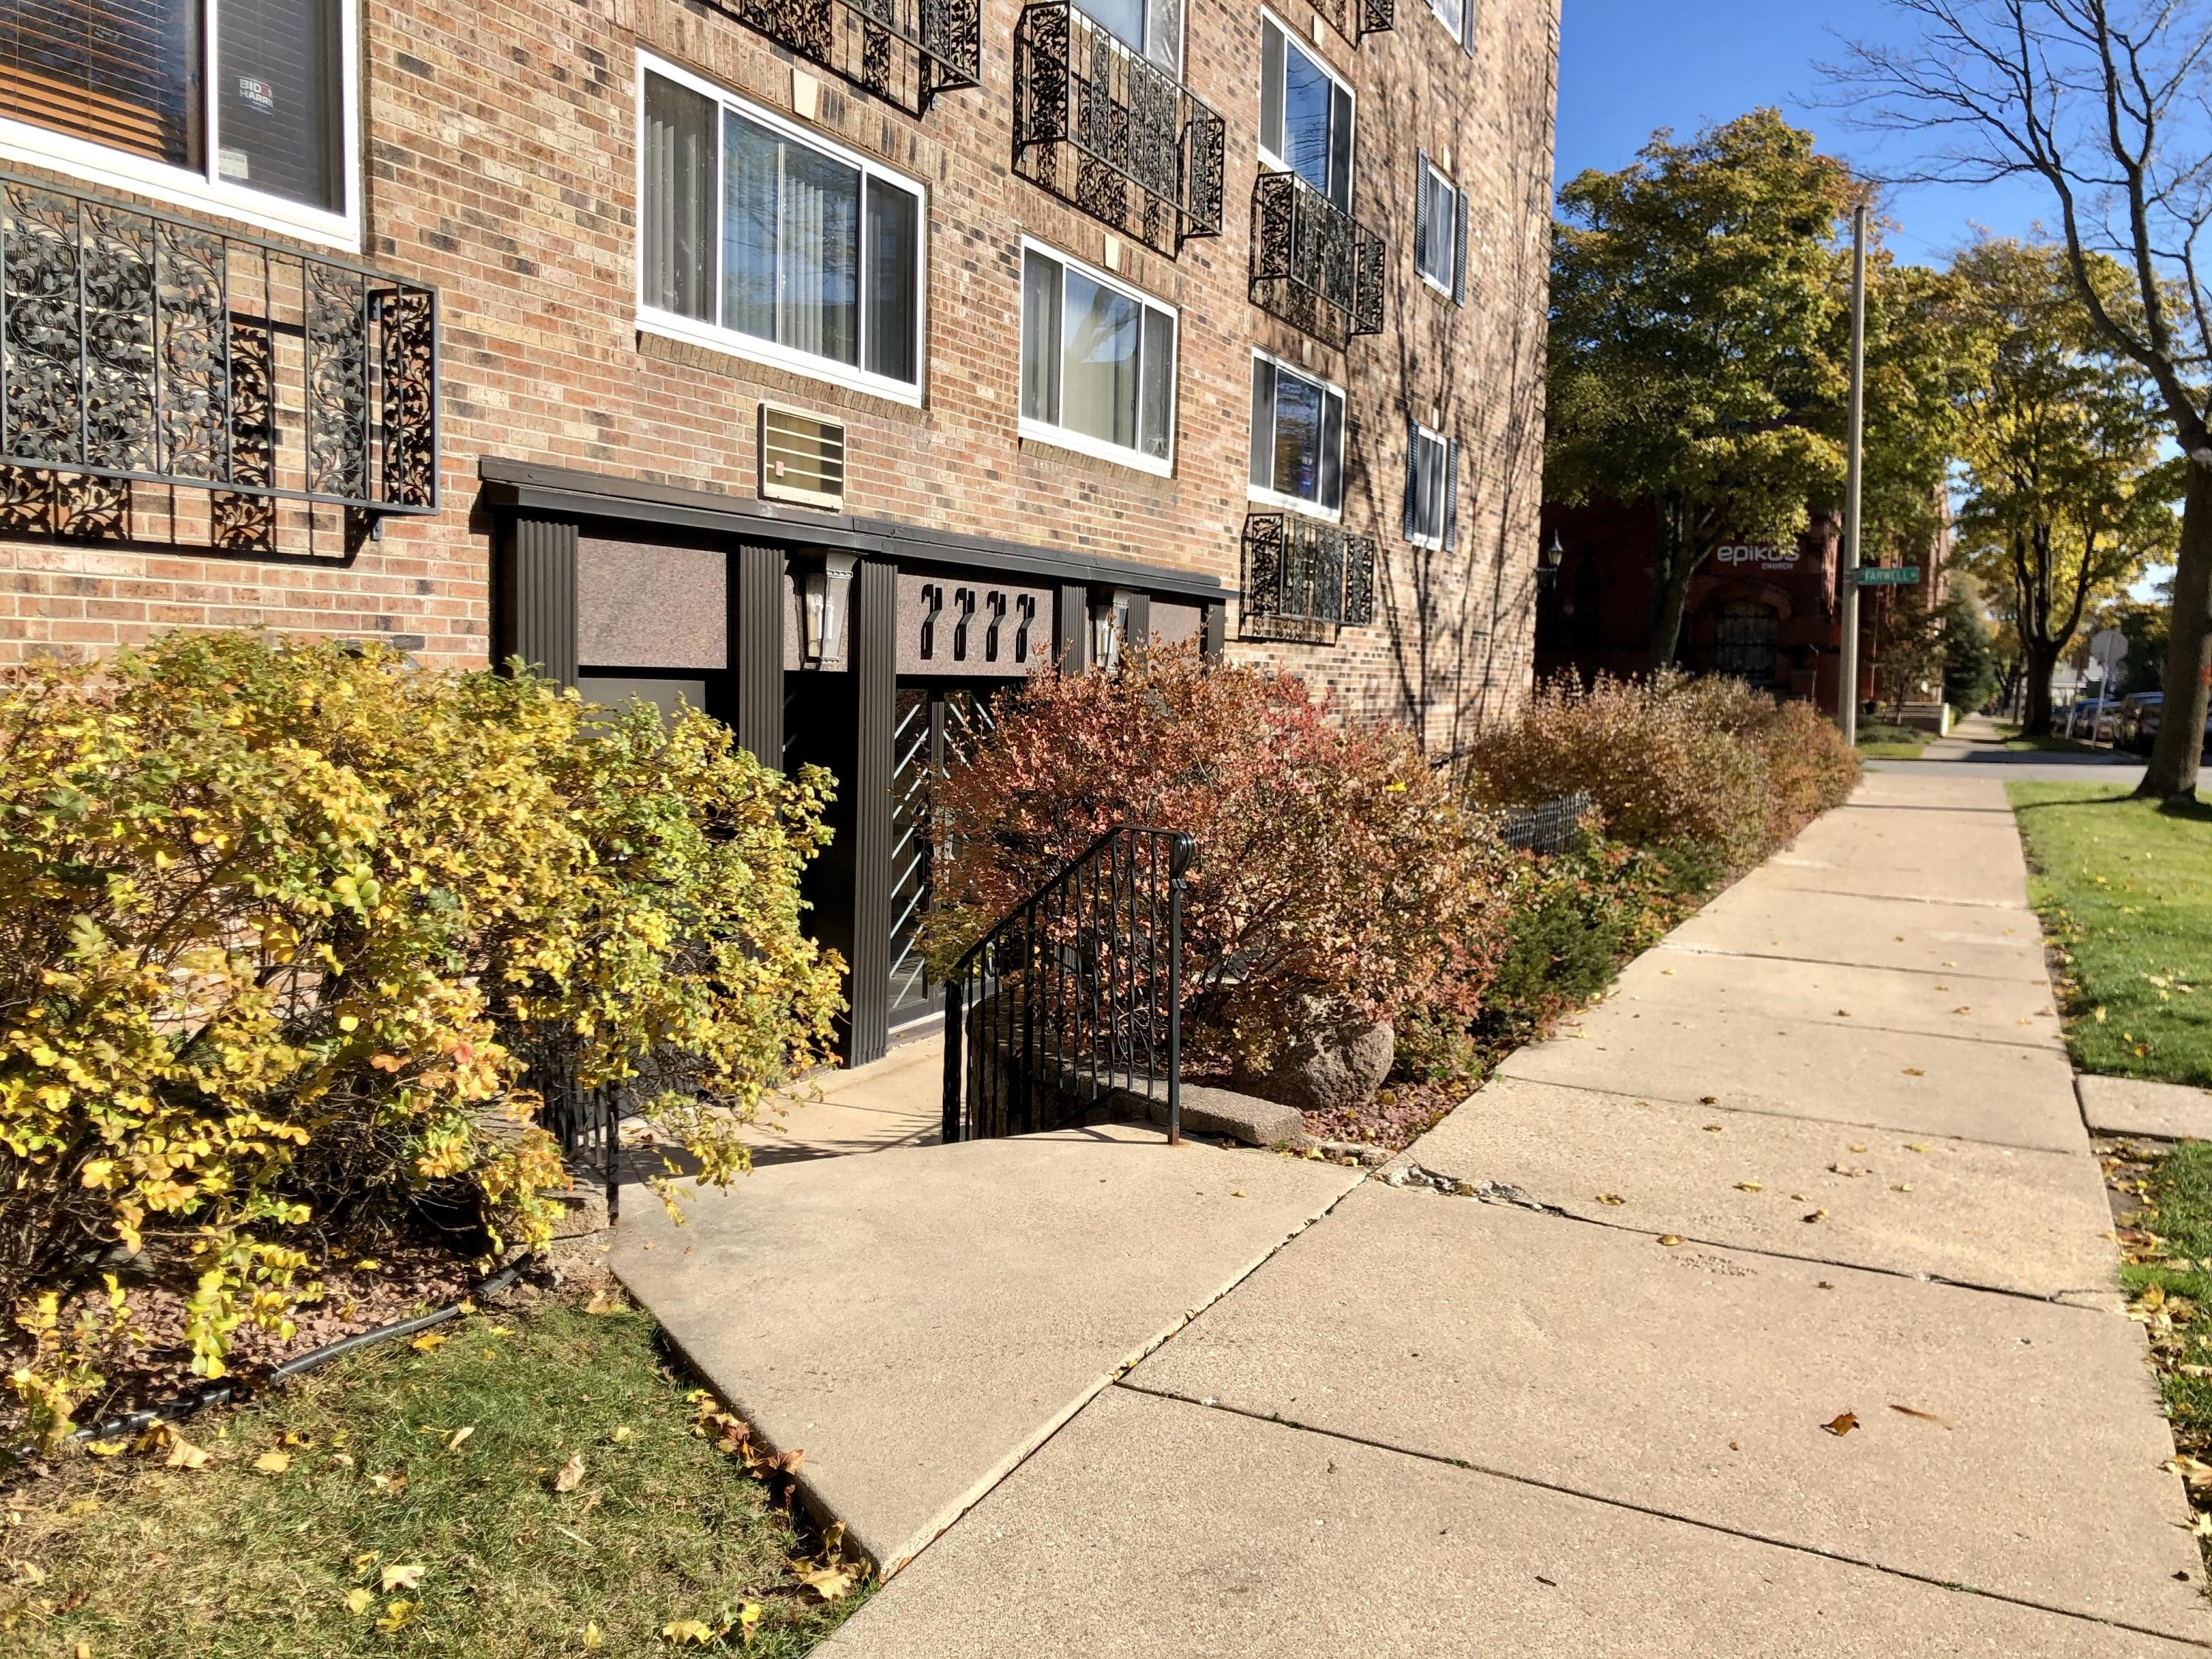 2222 E Belleview Pl #304 Milwaukee, WI 53211 Property Image